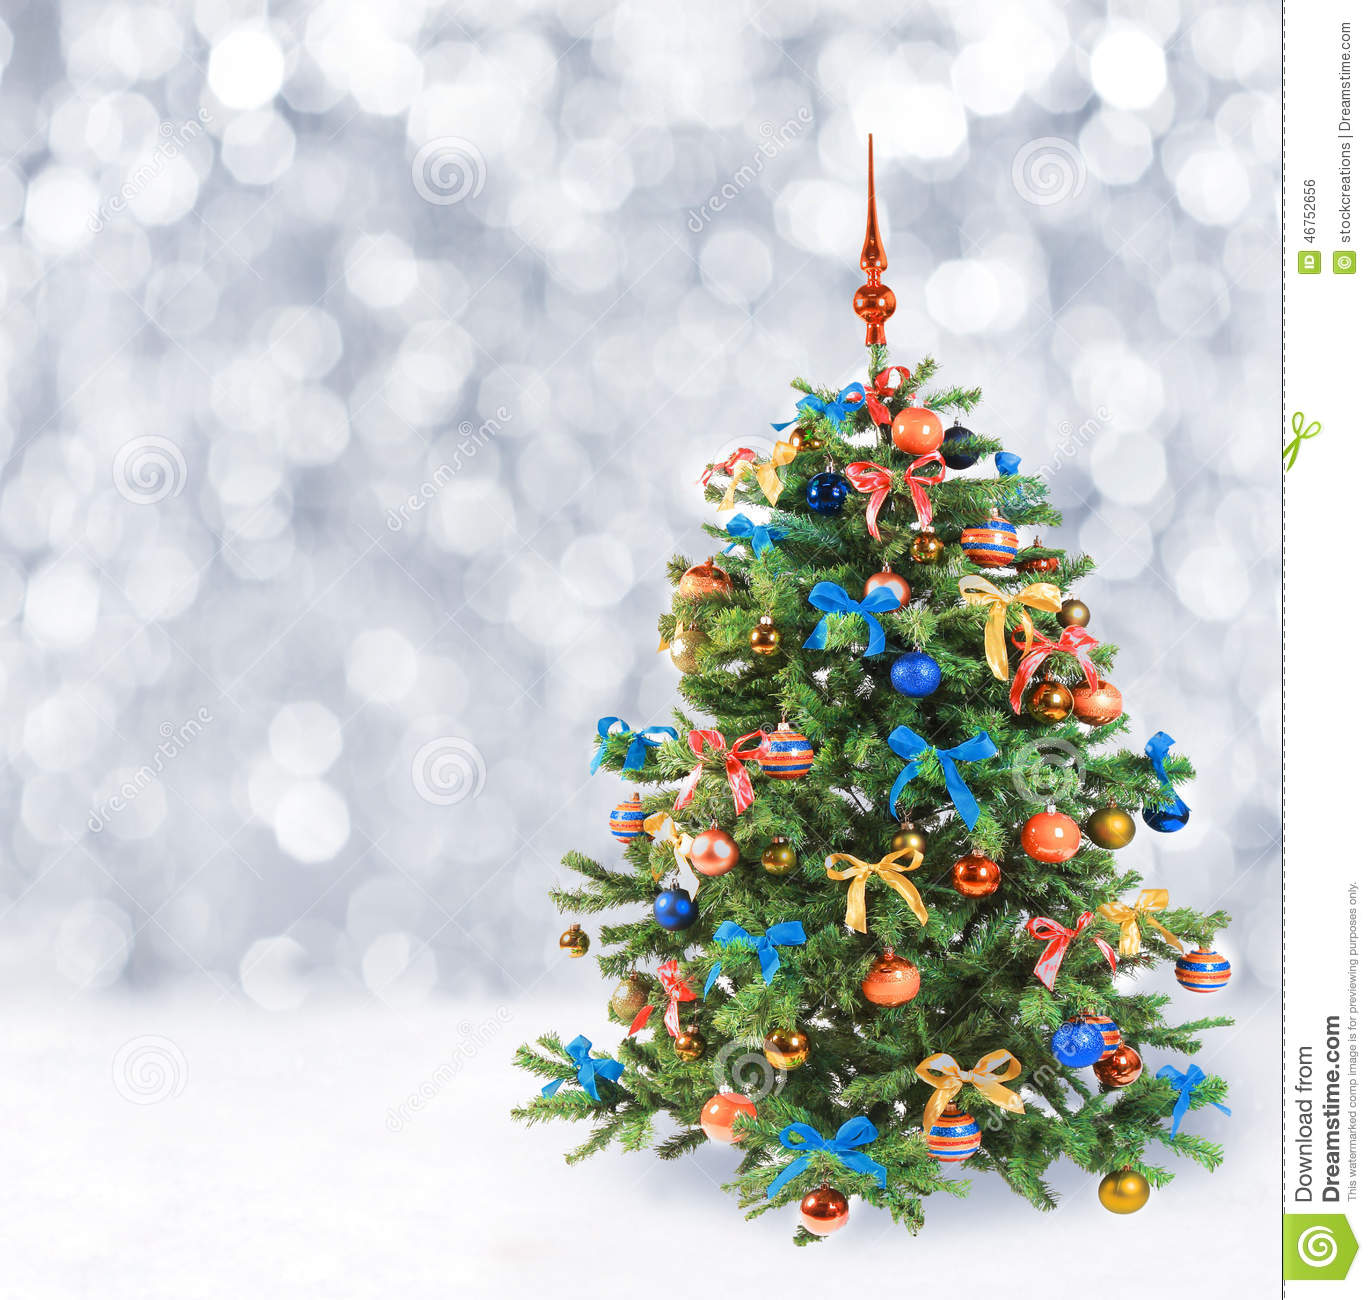 Free Falling Snow Wallpaper Download Festive Christmas Tree In Winter Snow Stock Photo Image